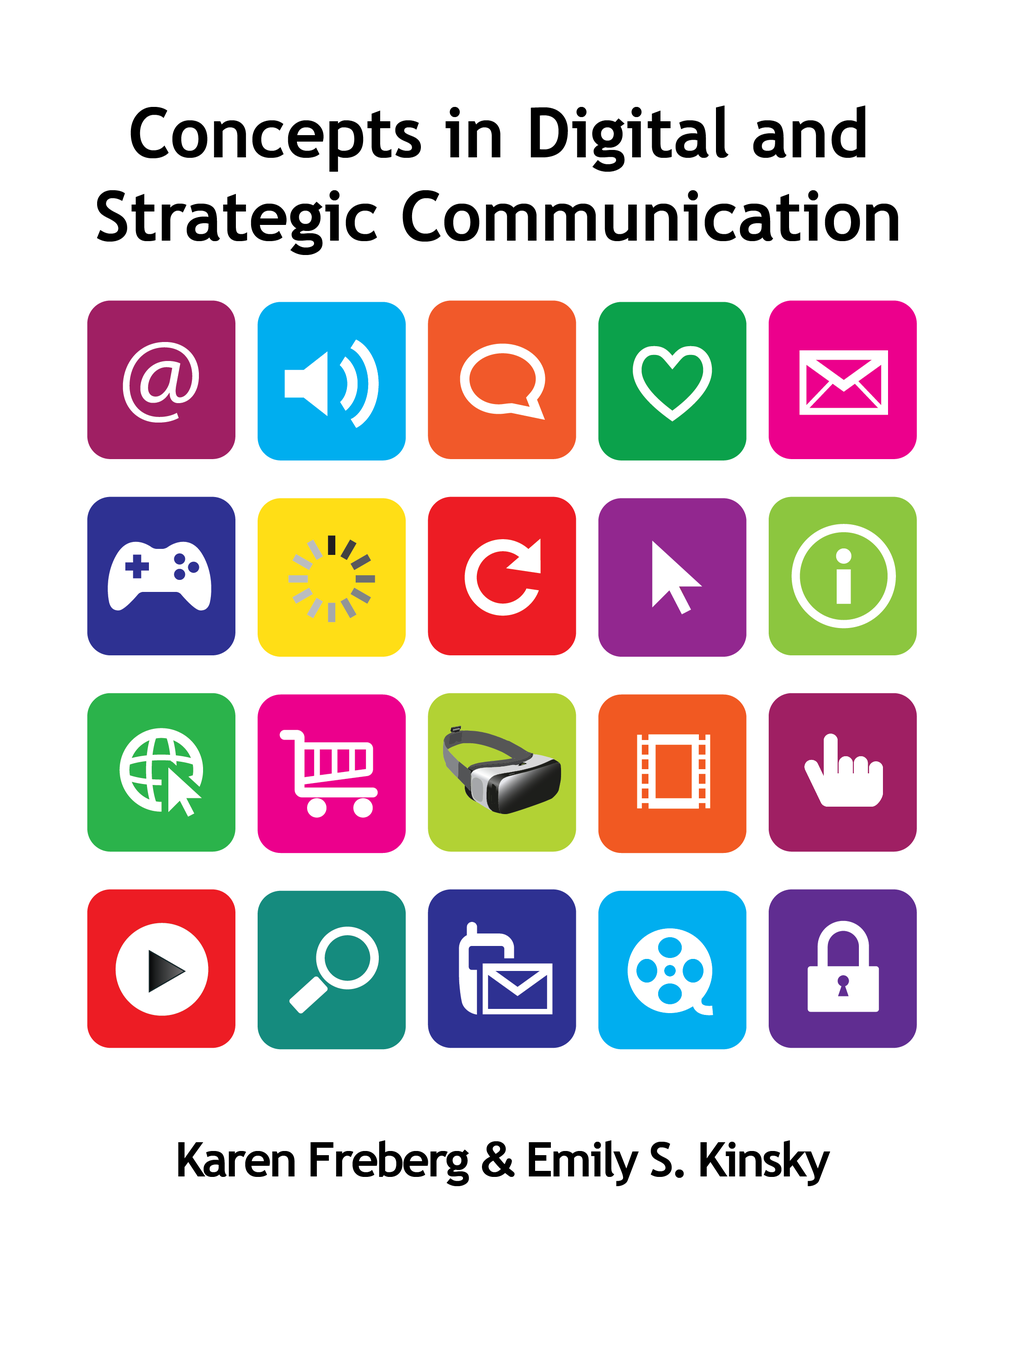 Concepts in Digital and Strategic Communication